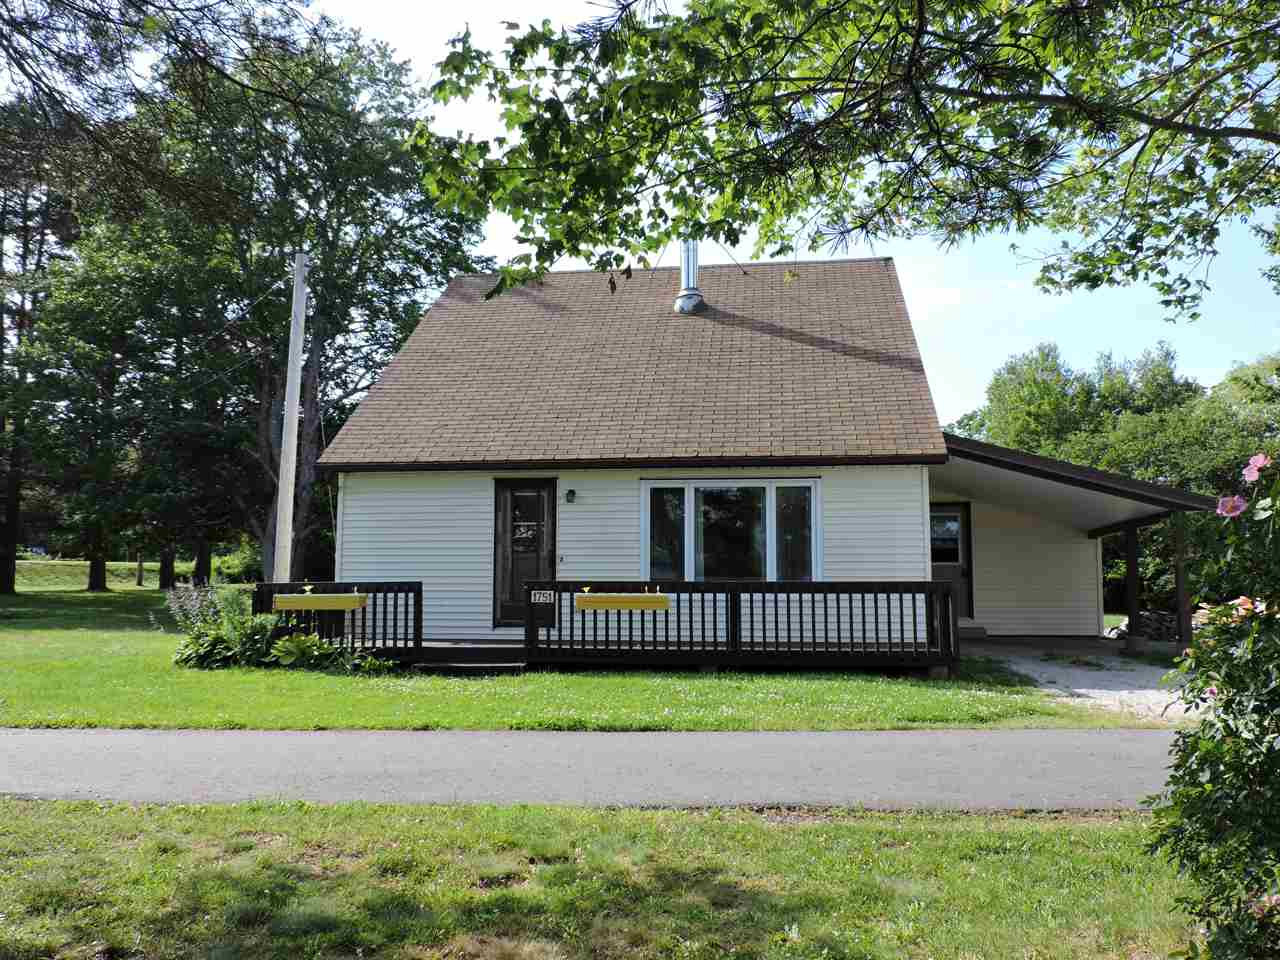 House for rent at 1751 NS-331, Pleasantville, NS in farmhouse style. This is the front of the house with lawn.